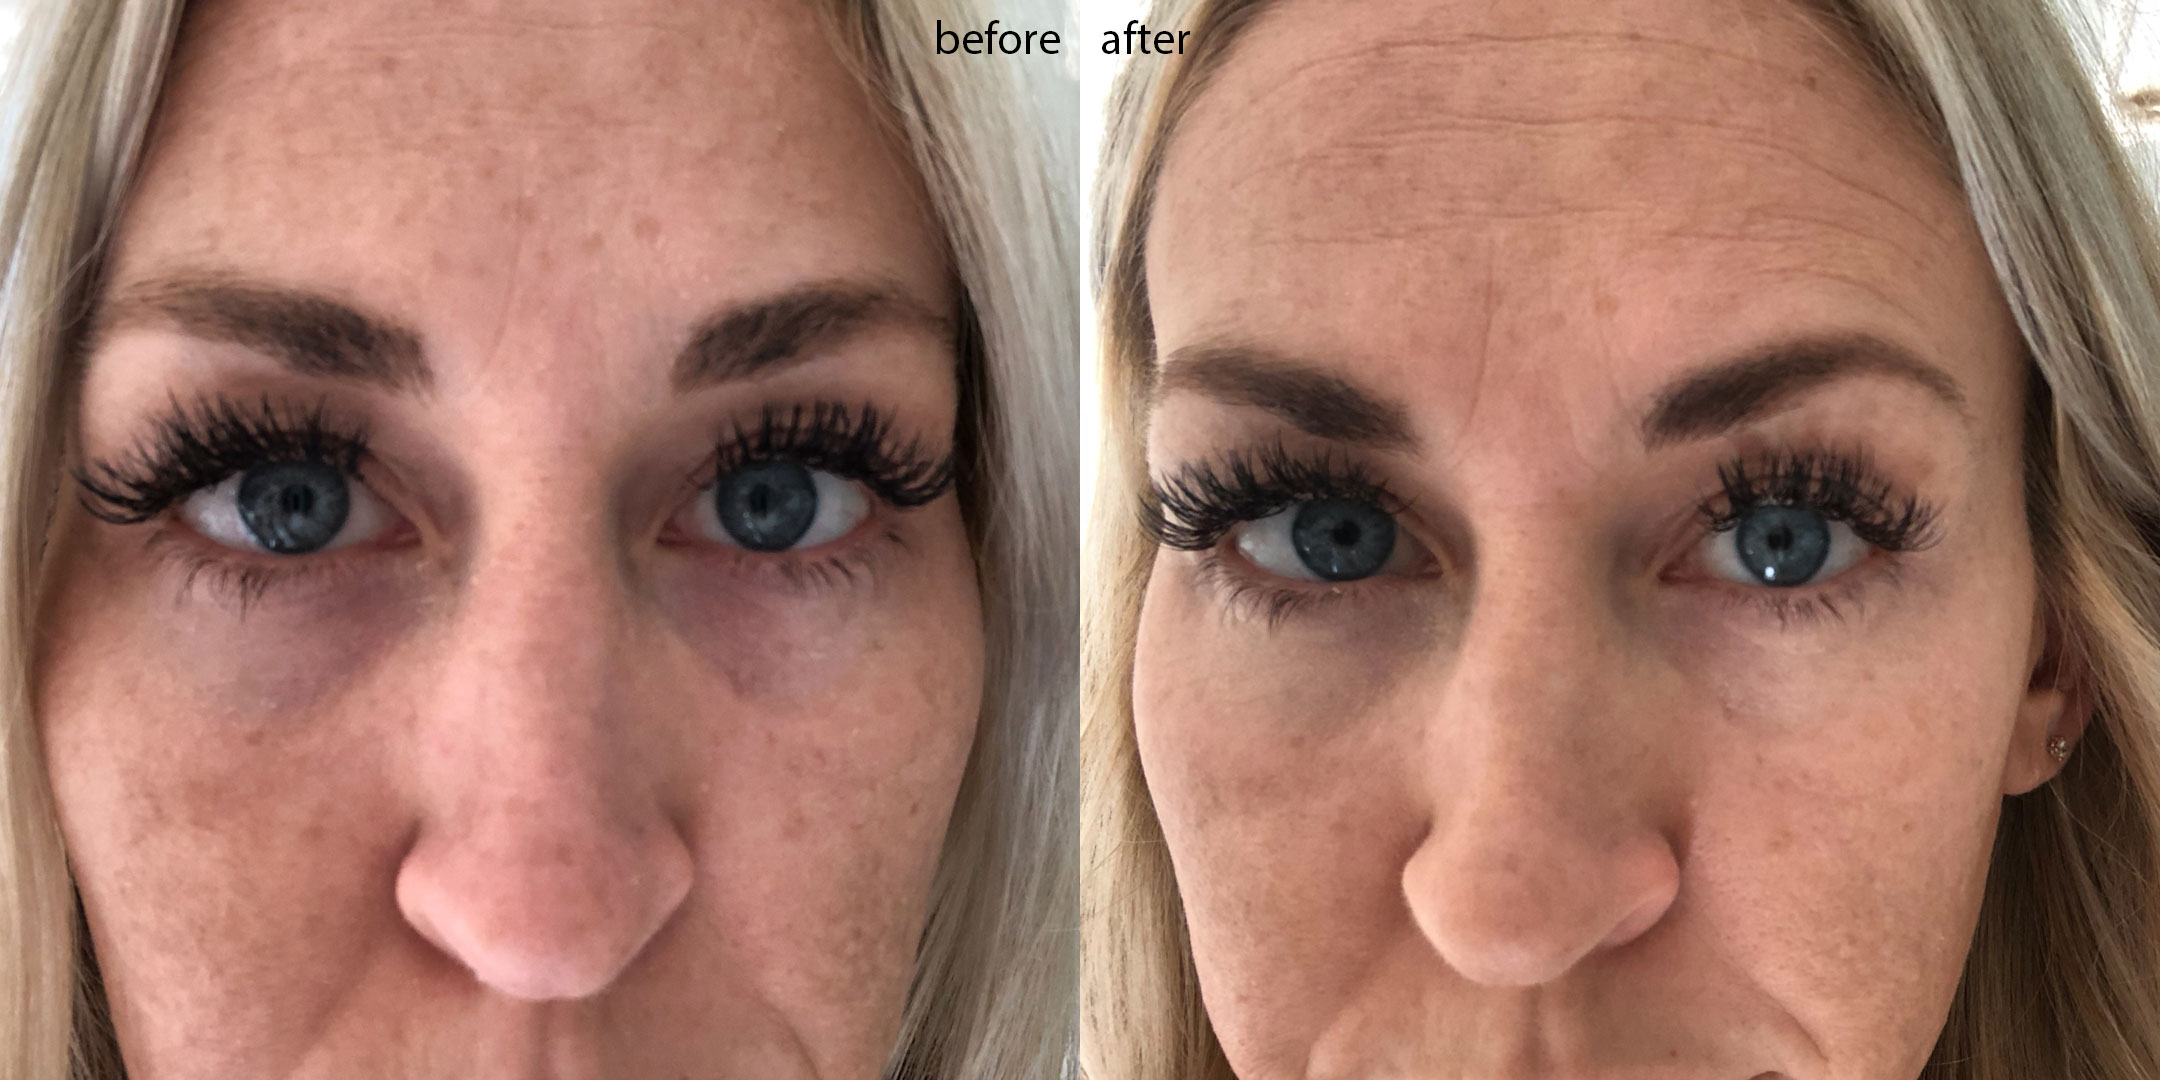 actual results from the olay brightening eye cream. up close and personal with my tired mom eyes | thelovedesignedlife.com #olayeyes #beforeandafter #darkcircles